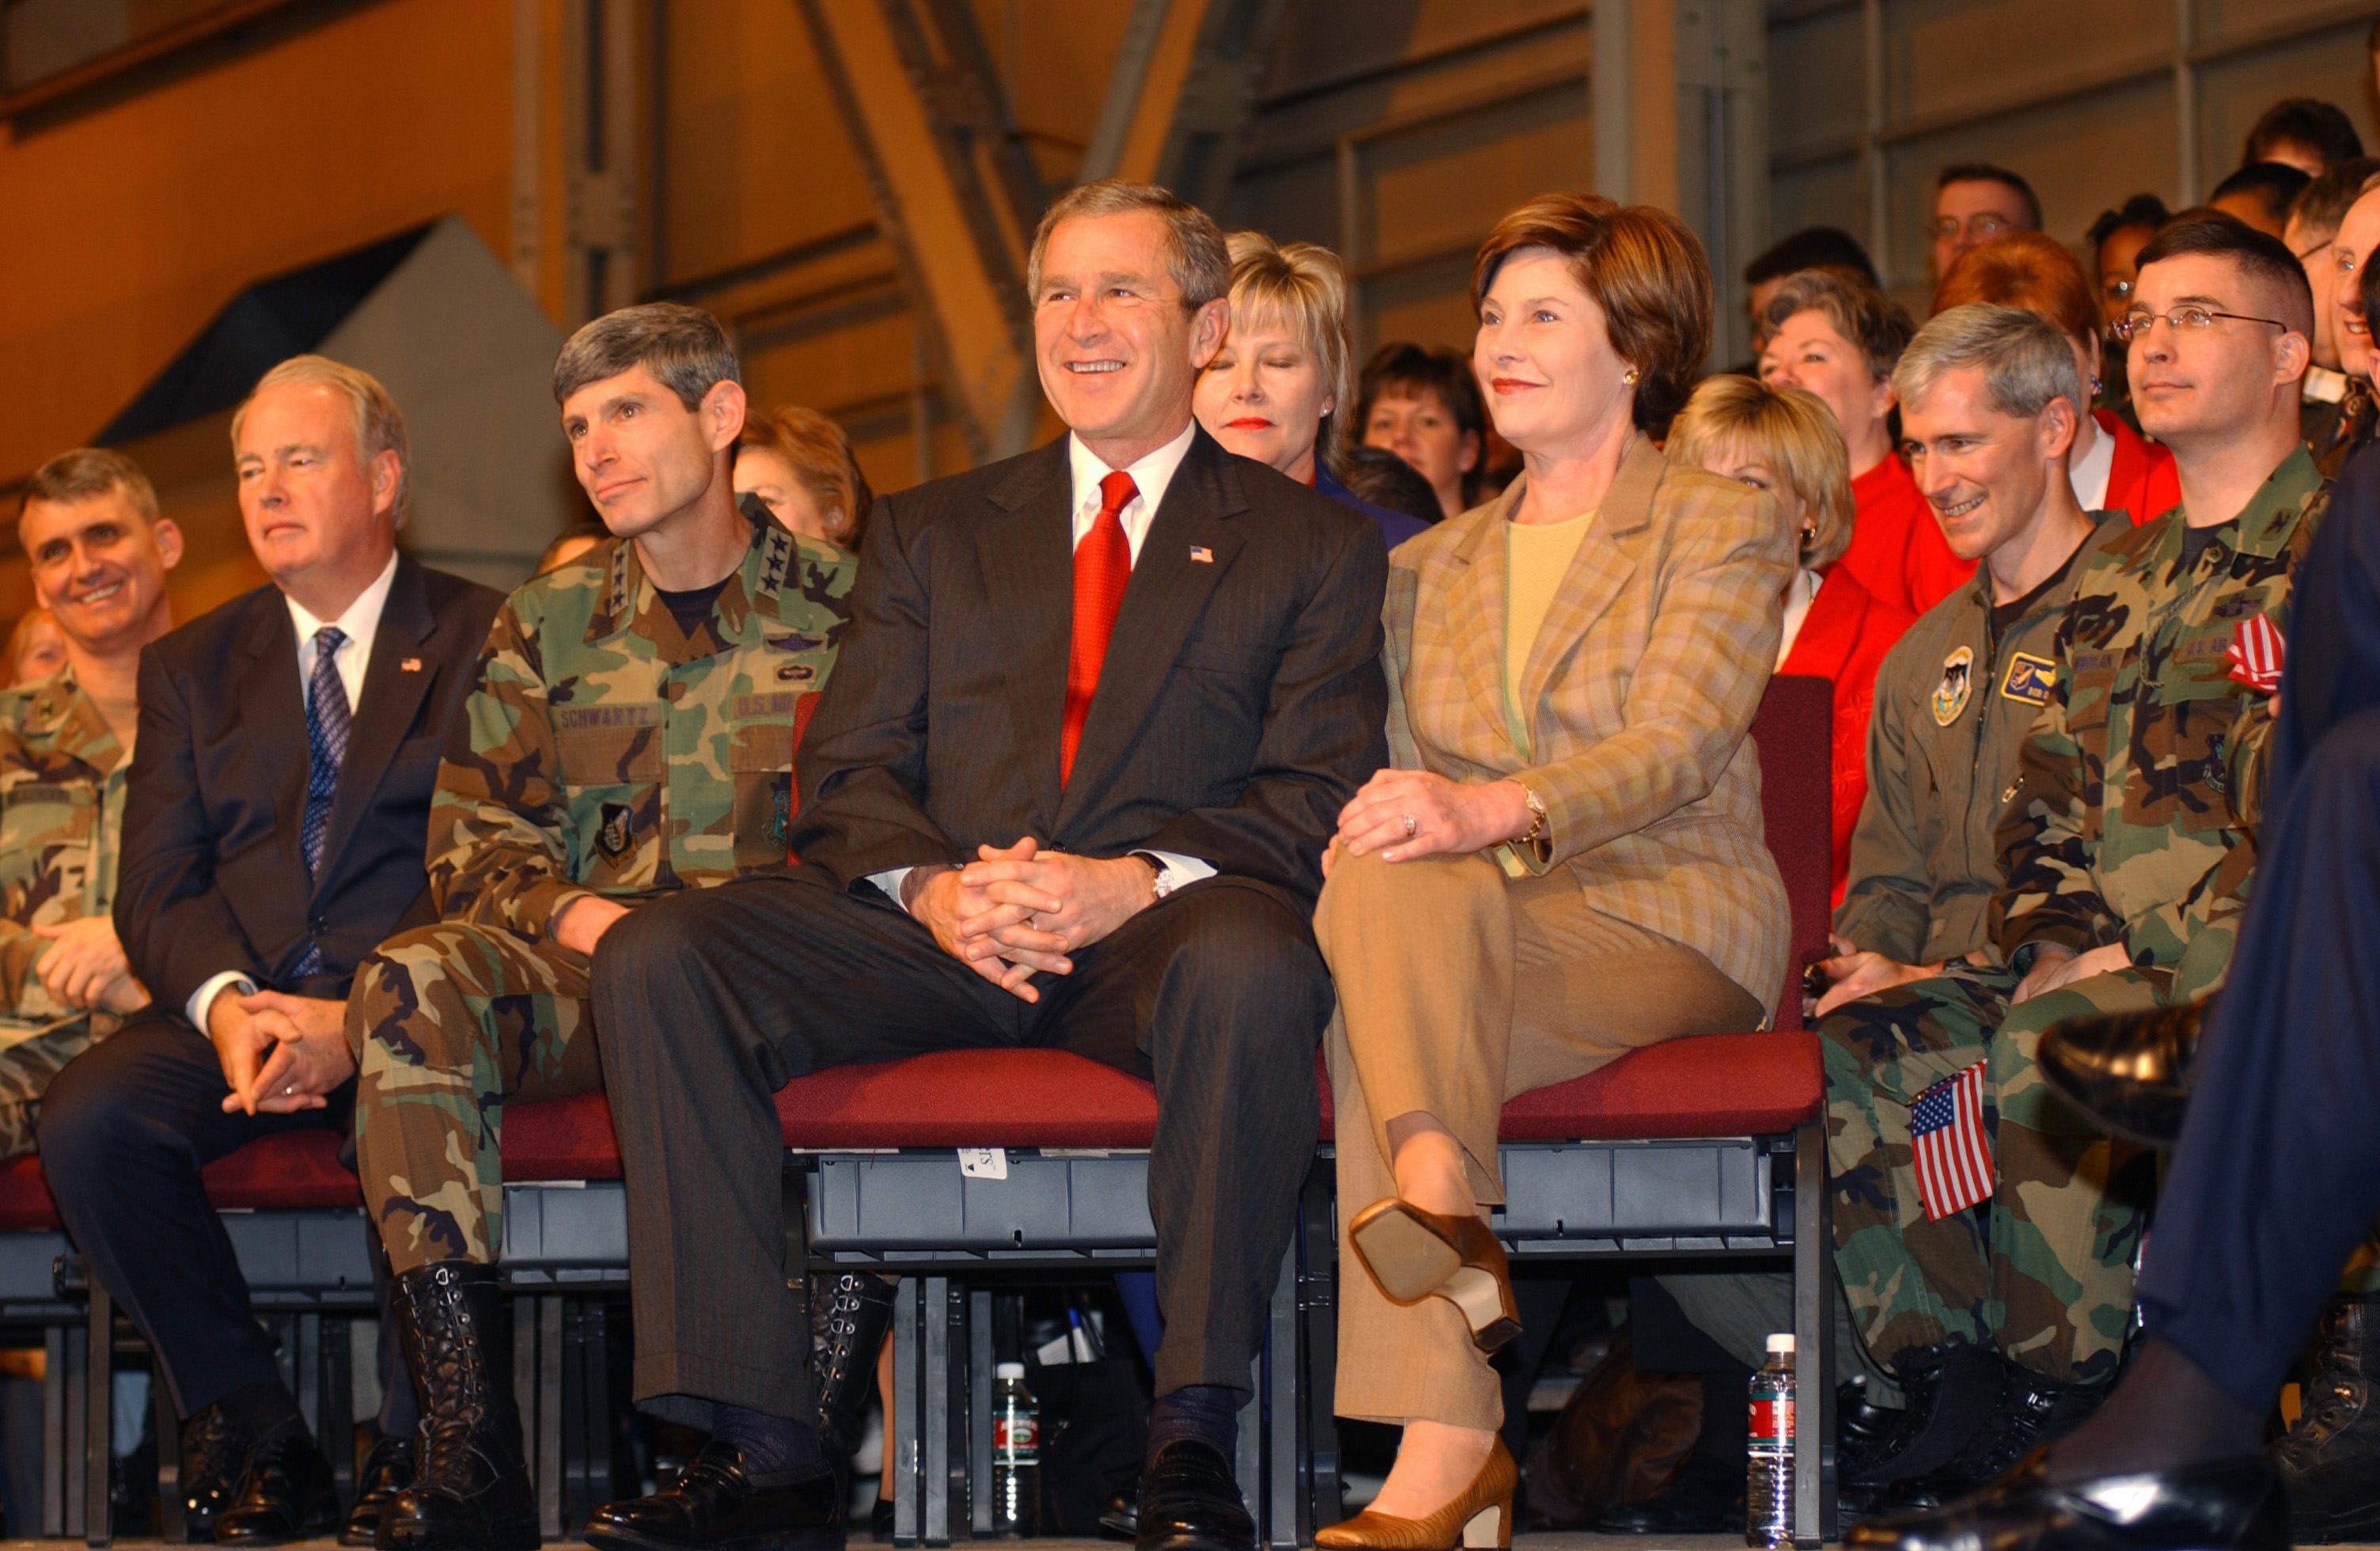 US President and Mrs. George W. Bush sit together on the stage before a full house in Hangar 3 at Elmendorf ir Force Base, laska. On his way to Japan, he stopped at Elmendorf FB, laska, where he spoke to an enthusiastic full house in the hanger. The President voiced his pride in the US forces;